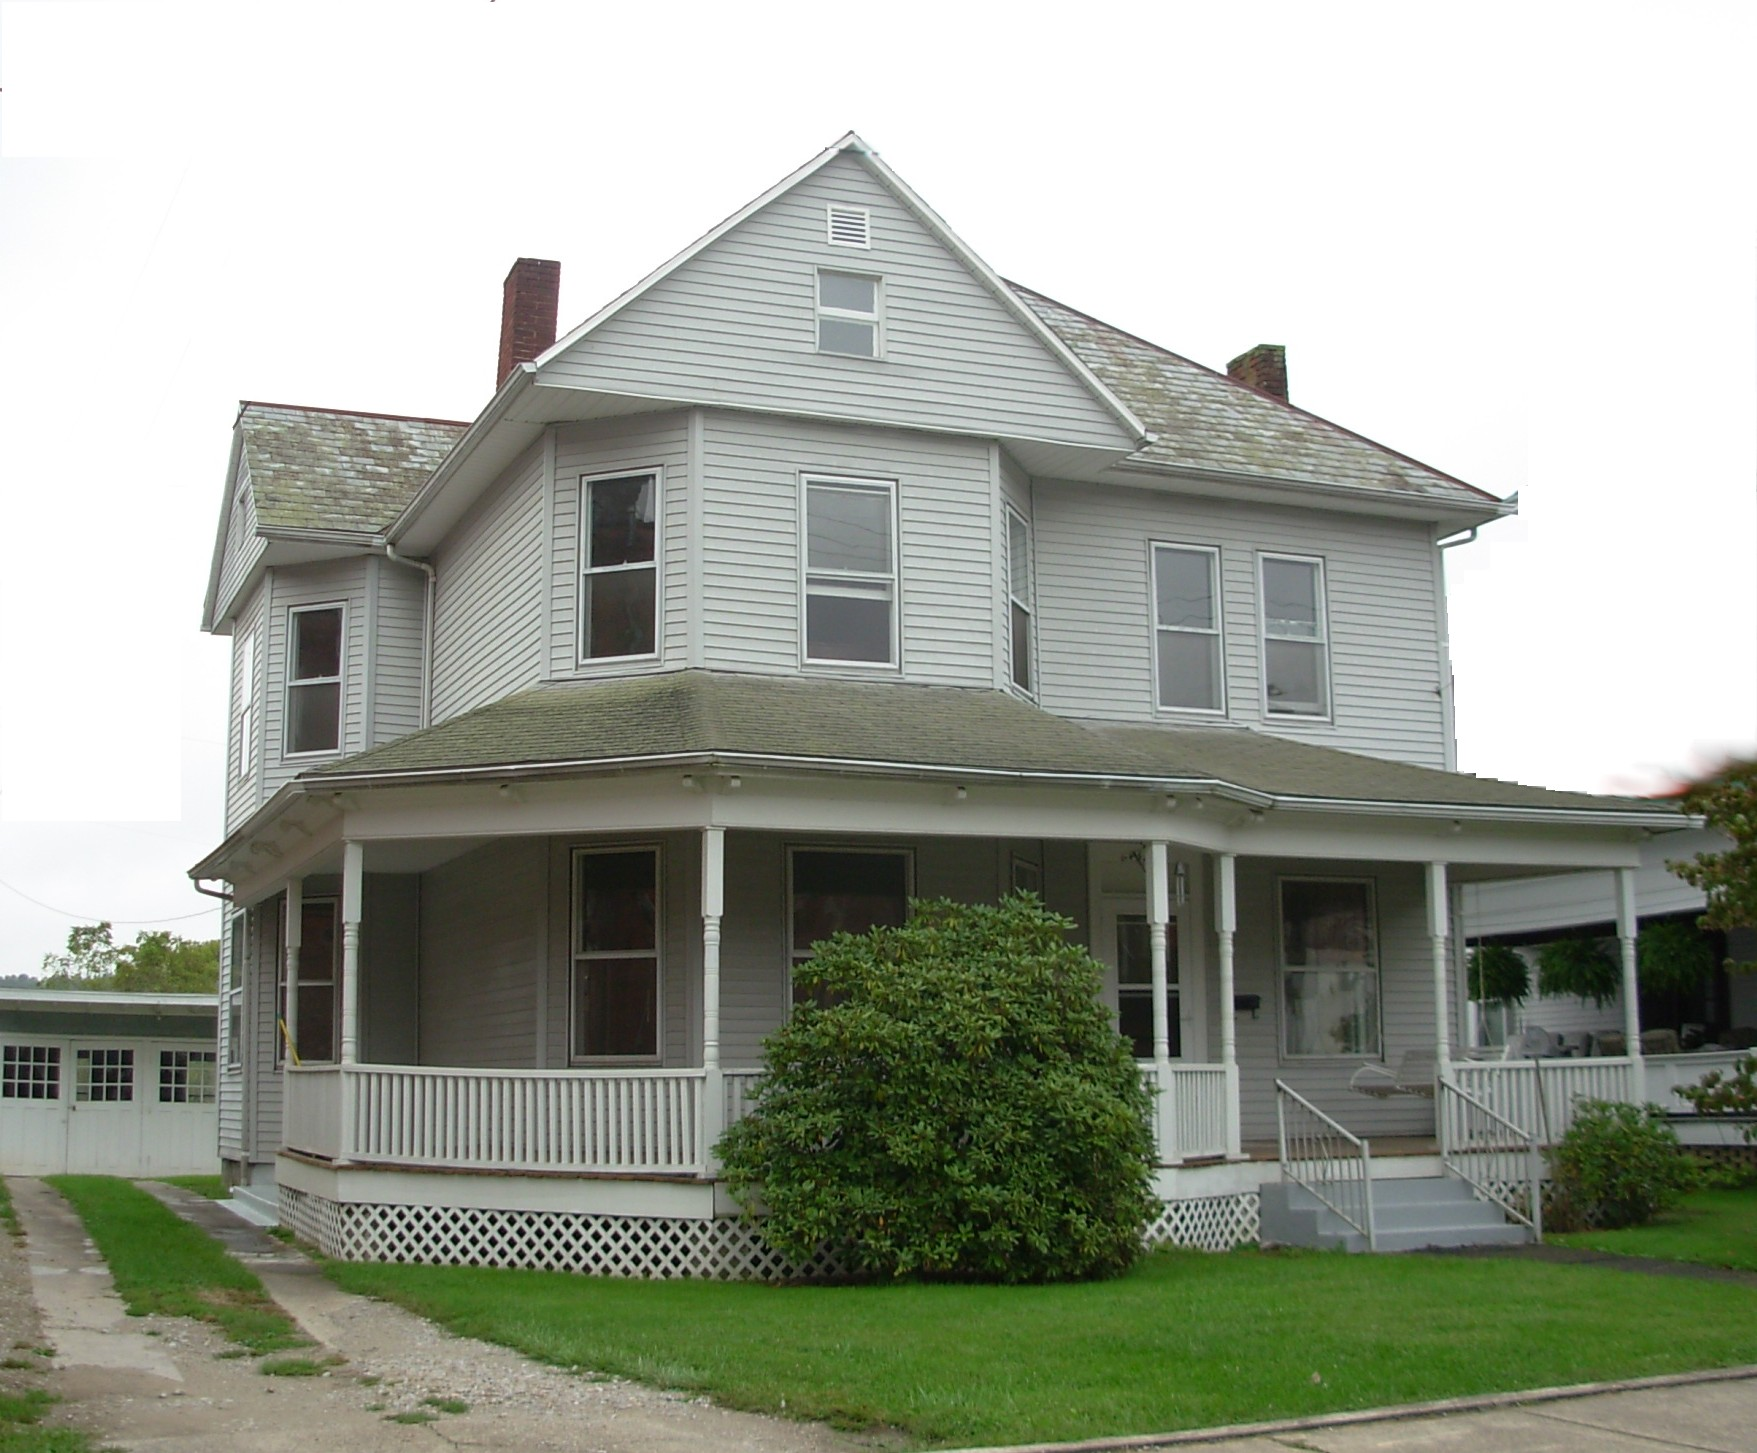 The T. R. Simmons House